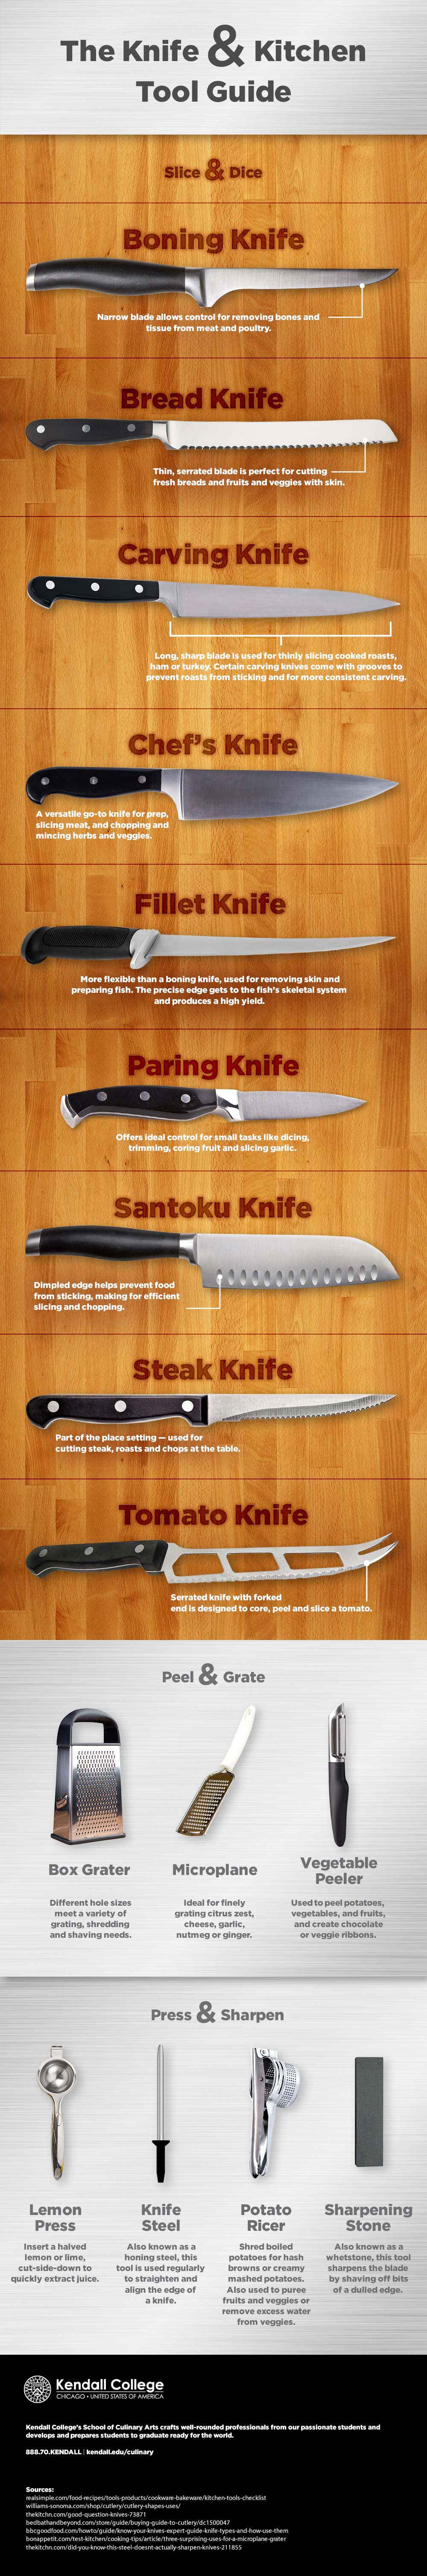 The Knife & Kitchen Tool Guide